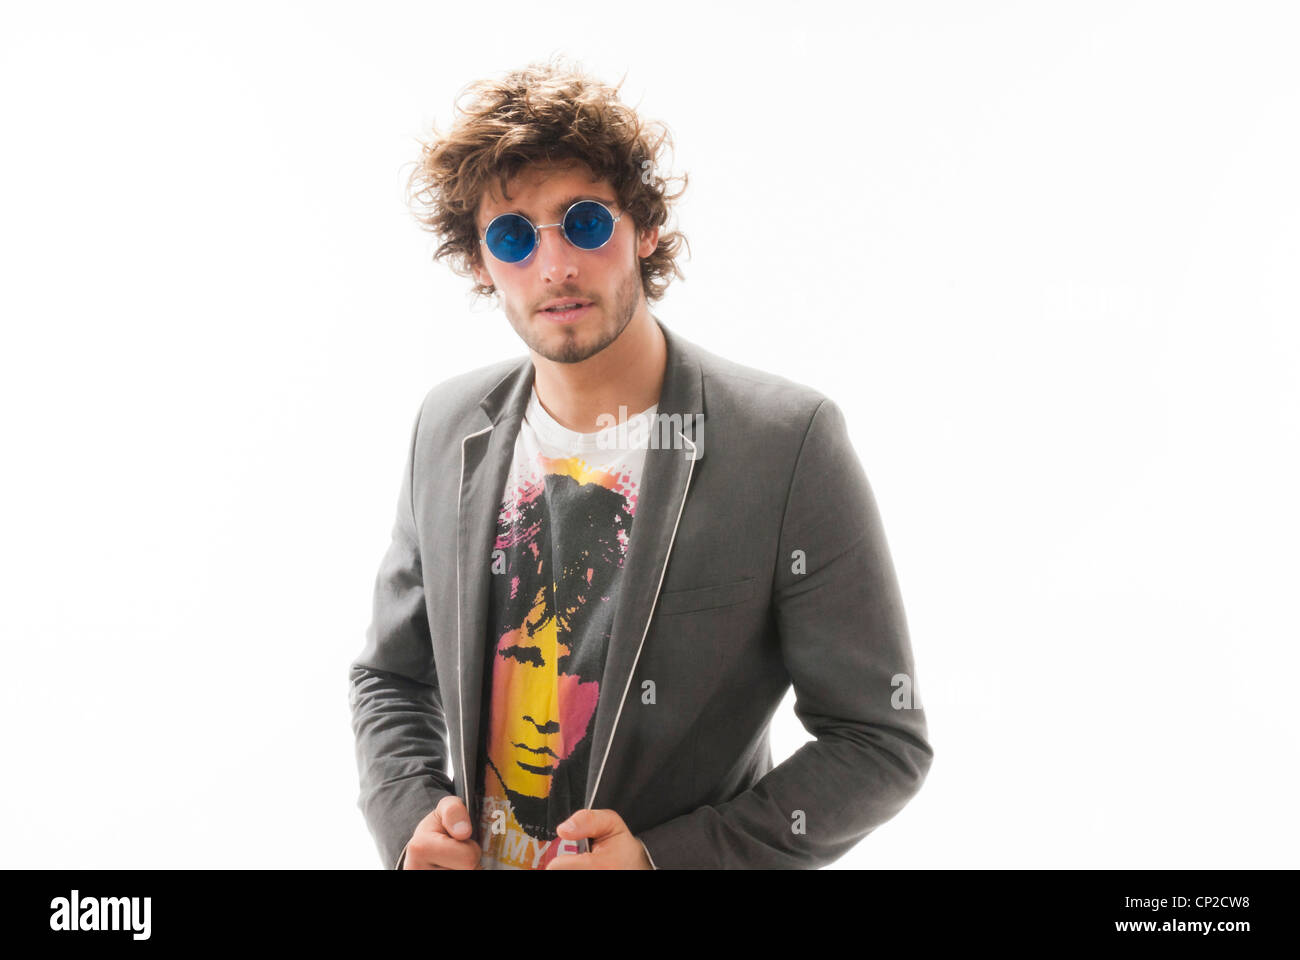 crazy hair male model with blue john lennon style glasses wearing stock photo 47997188 alamy. Black Bedroom Furniture Sets. Home Design Ideas